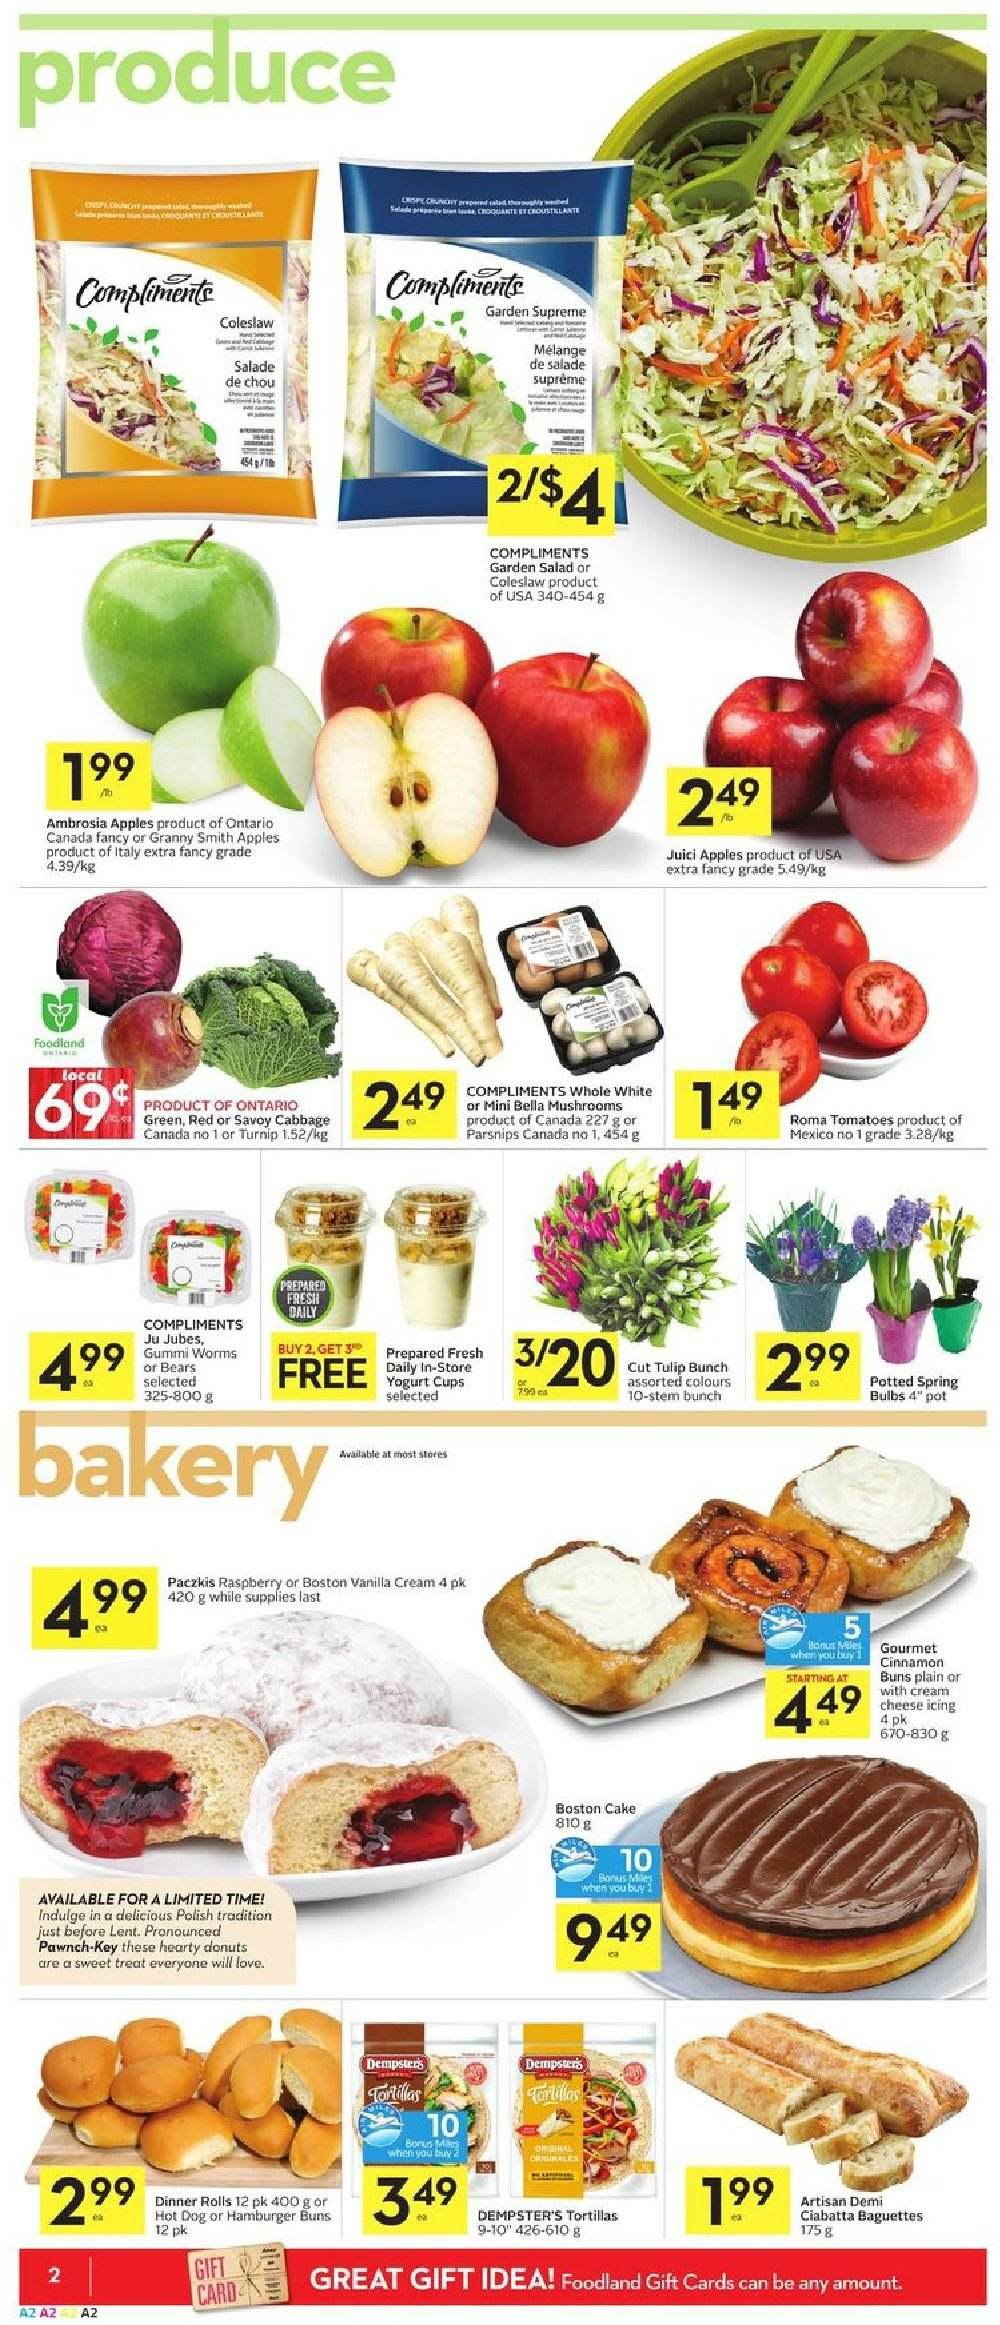 Foodland Flyer  - February 21, 2019 - February 27, 2019. Page 2.